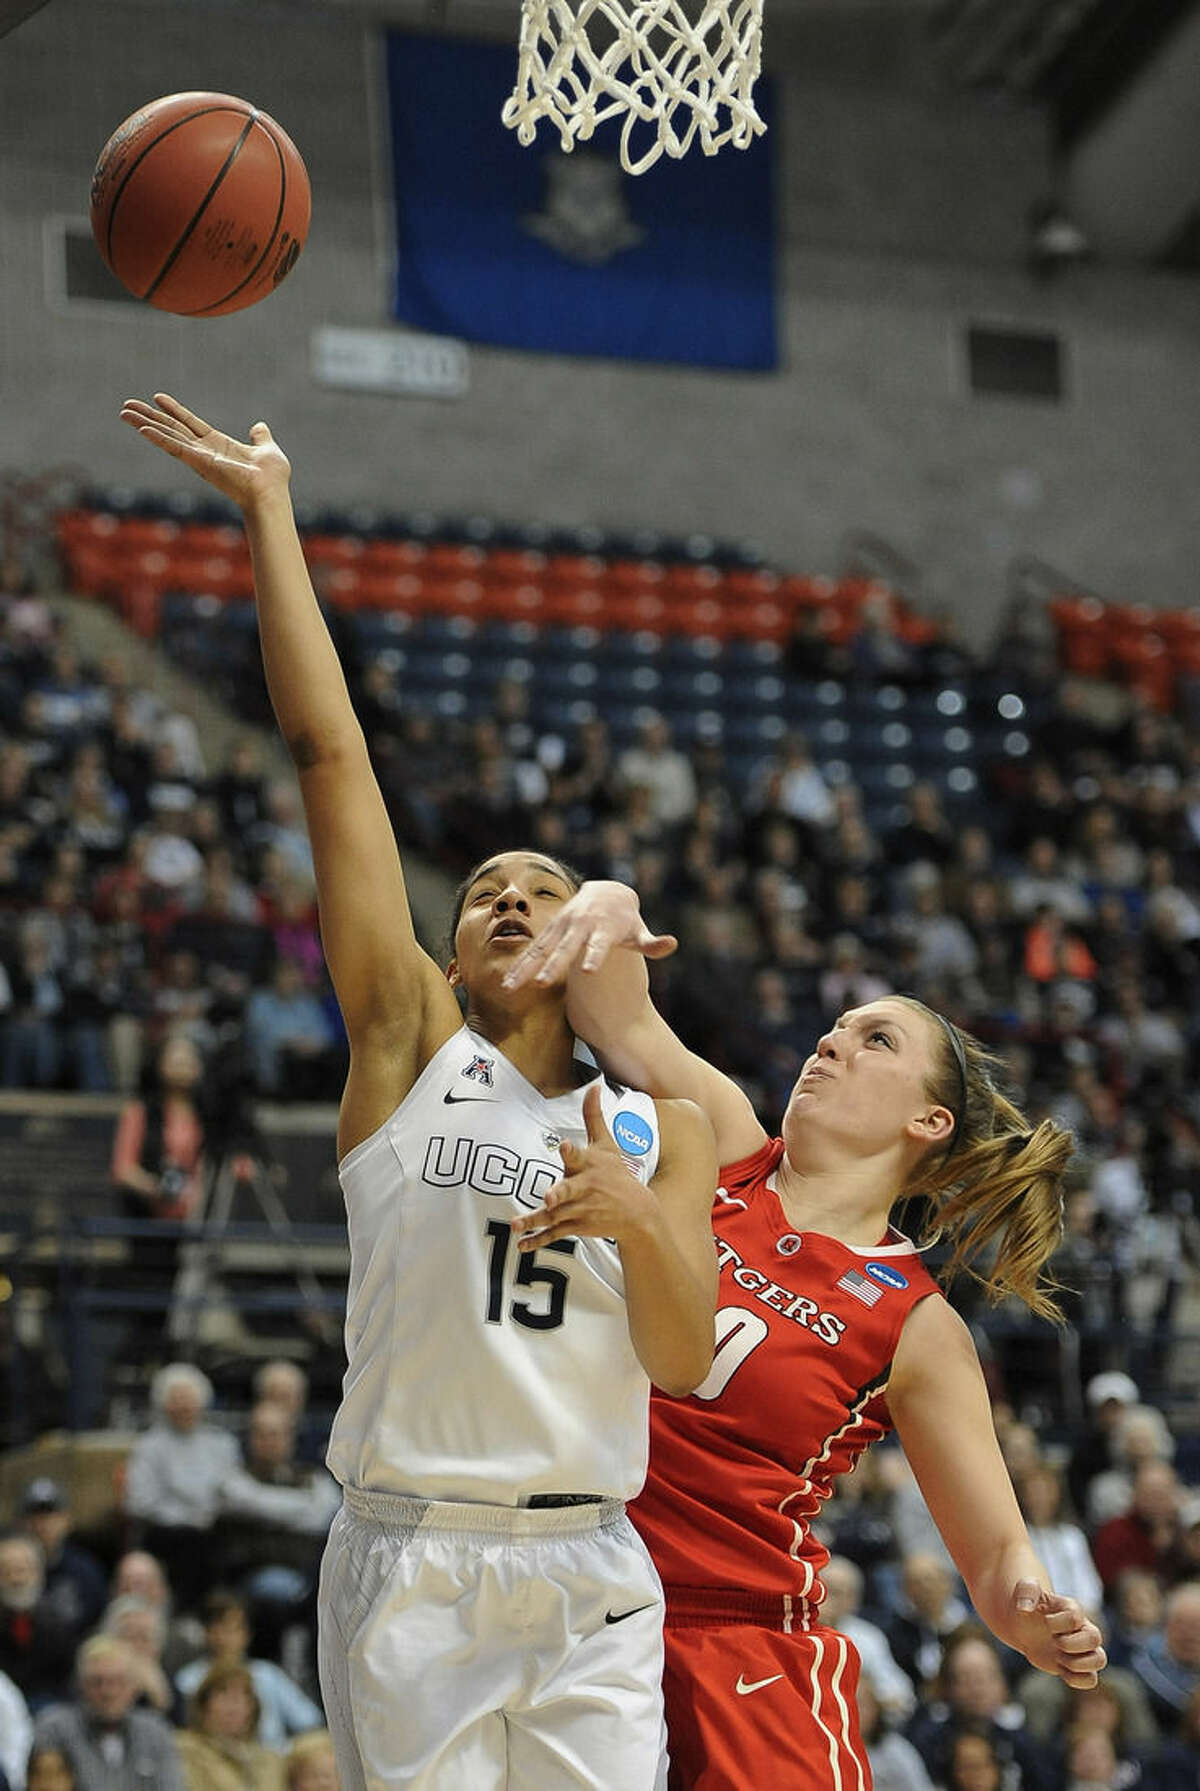 Connecticut's Gabby Williams, left, shoots as Rutgers' Christa Evans, right, defends during the first half of a college basketball game in the second round of the NCAA tournament Monday, March 23, 2015, in Storrs, Conn. (AP Photo/Jessica Hill)